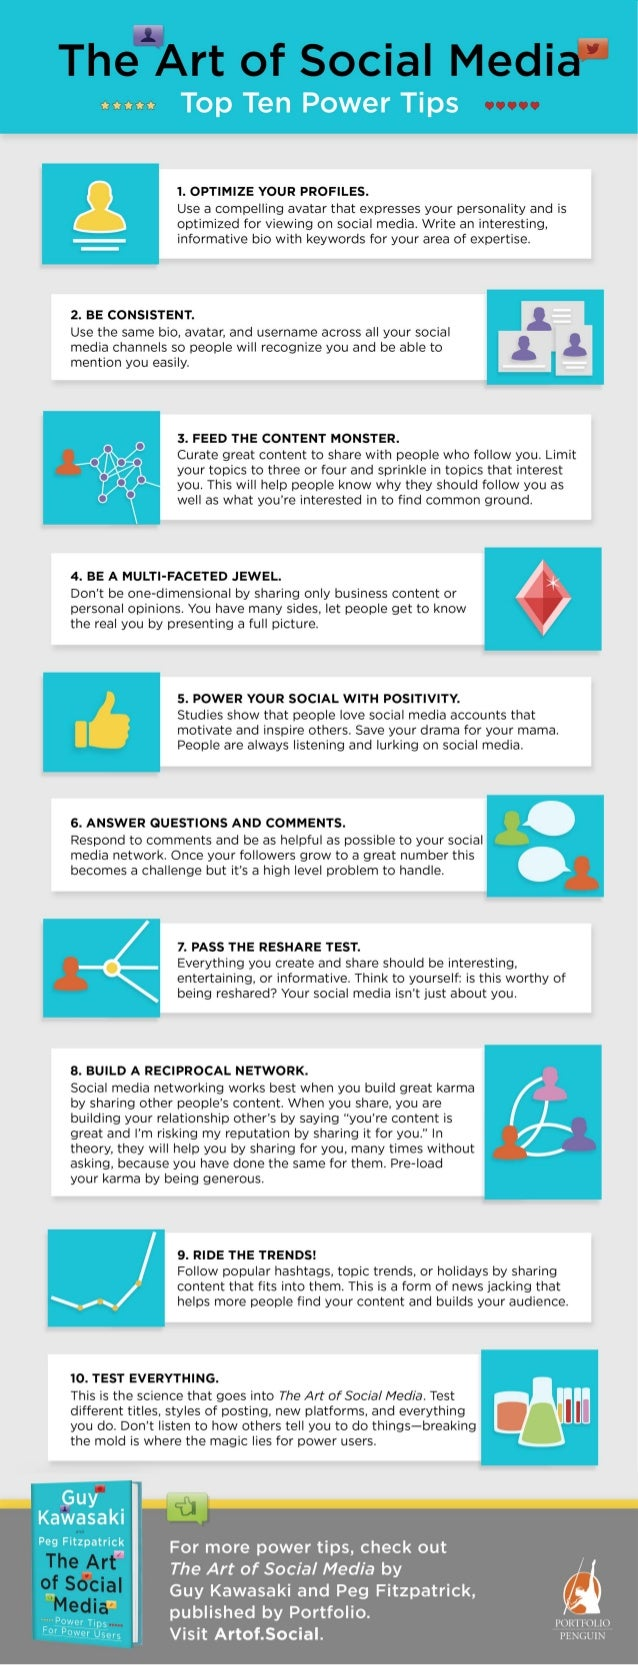 The Art of Social Media Power Tips Infographic